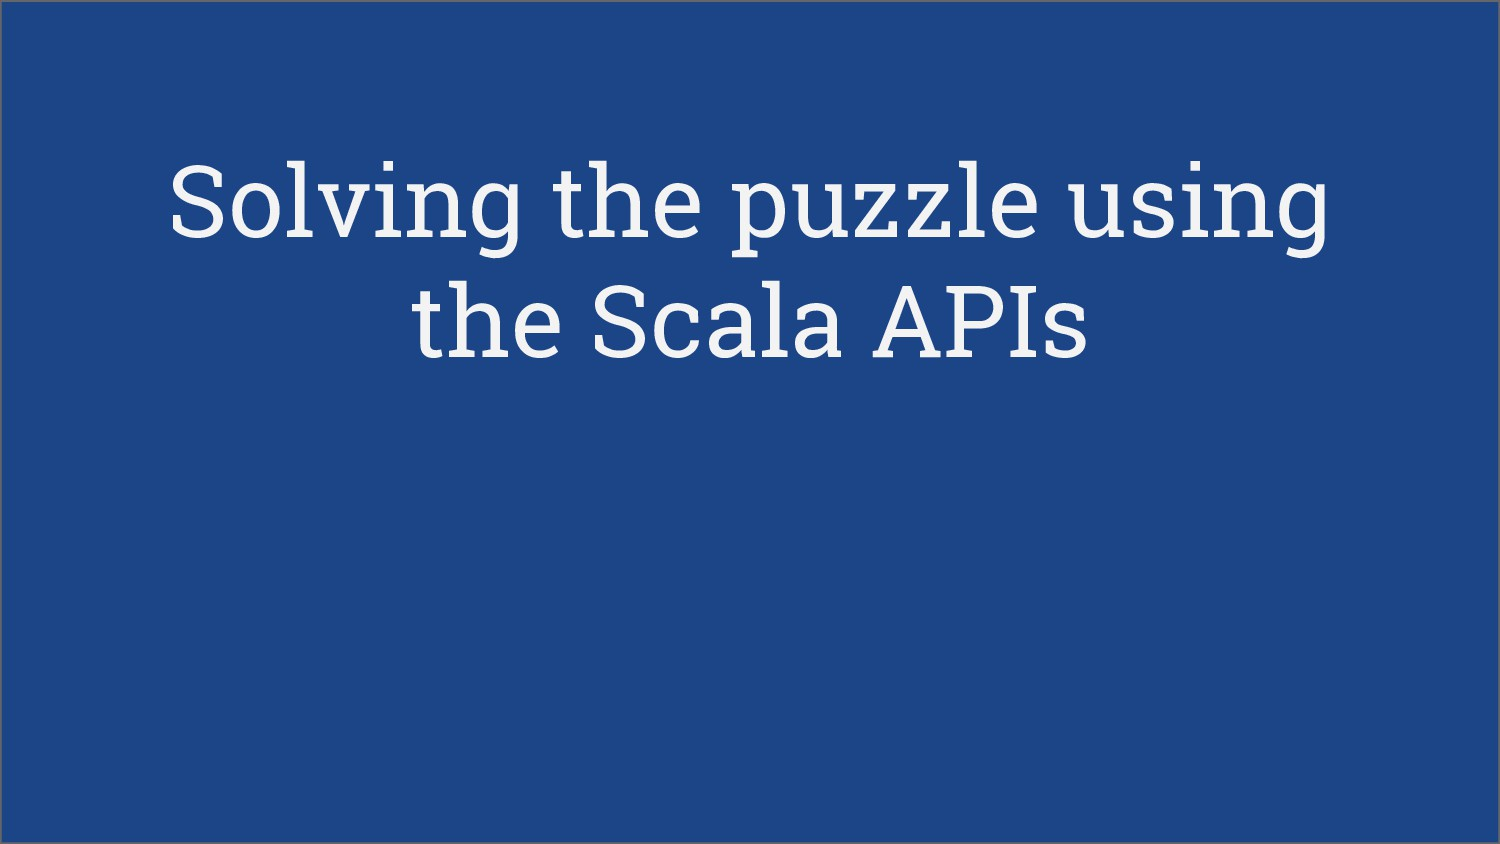 Solving the puzzle using the Scala APIs